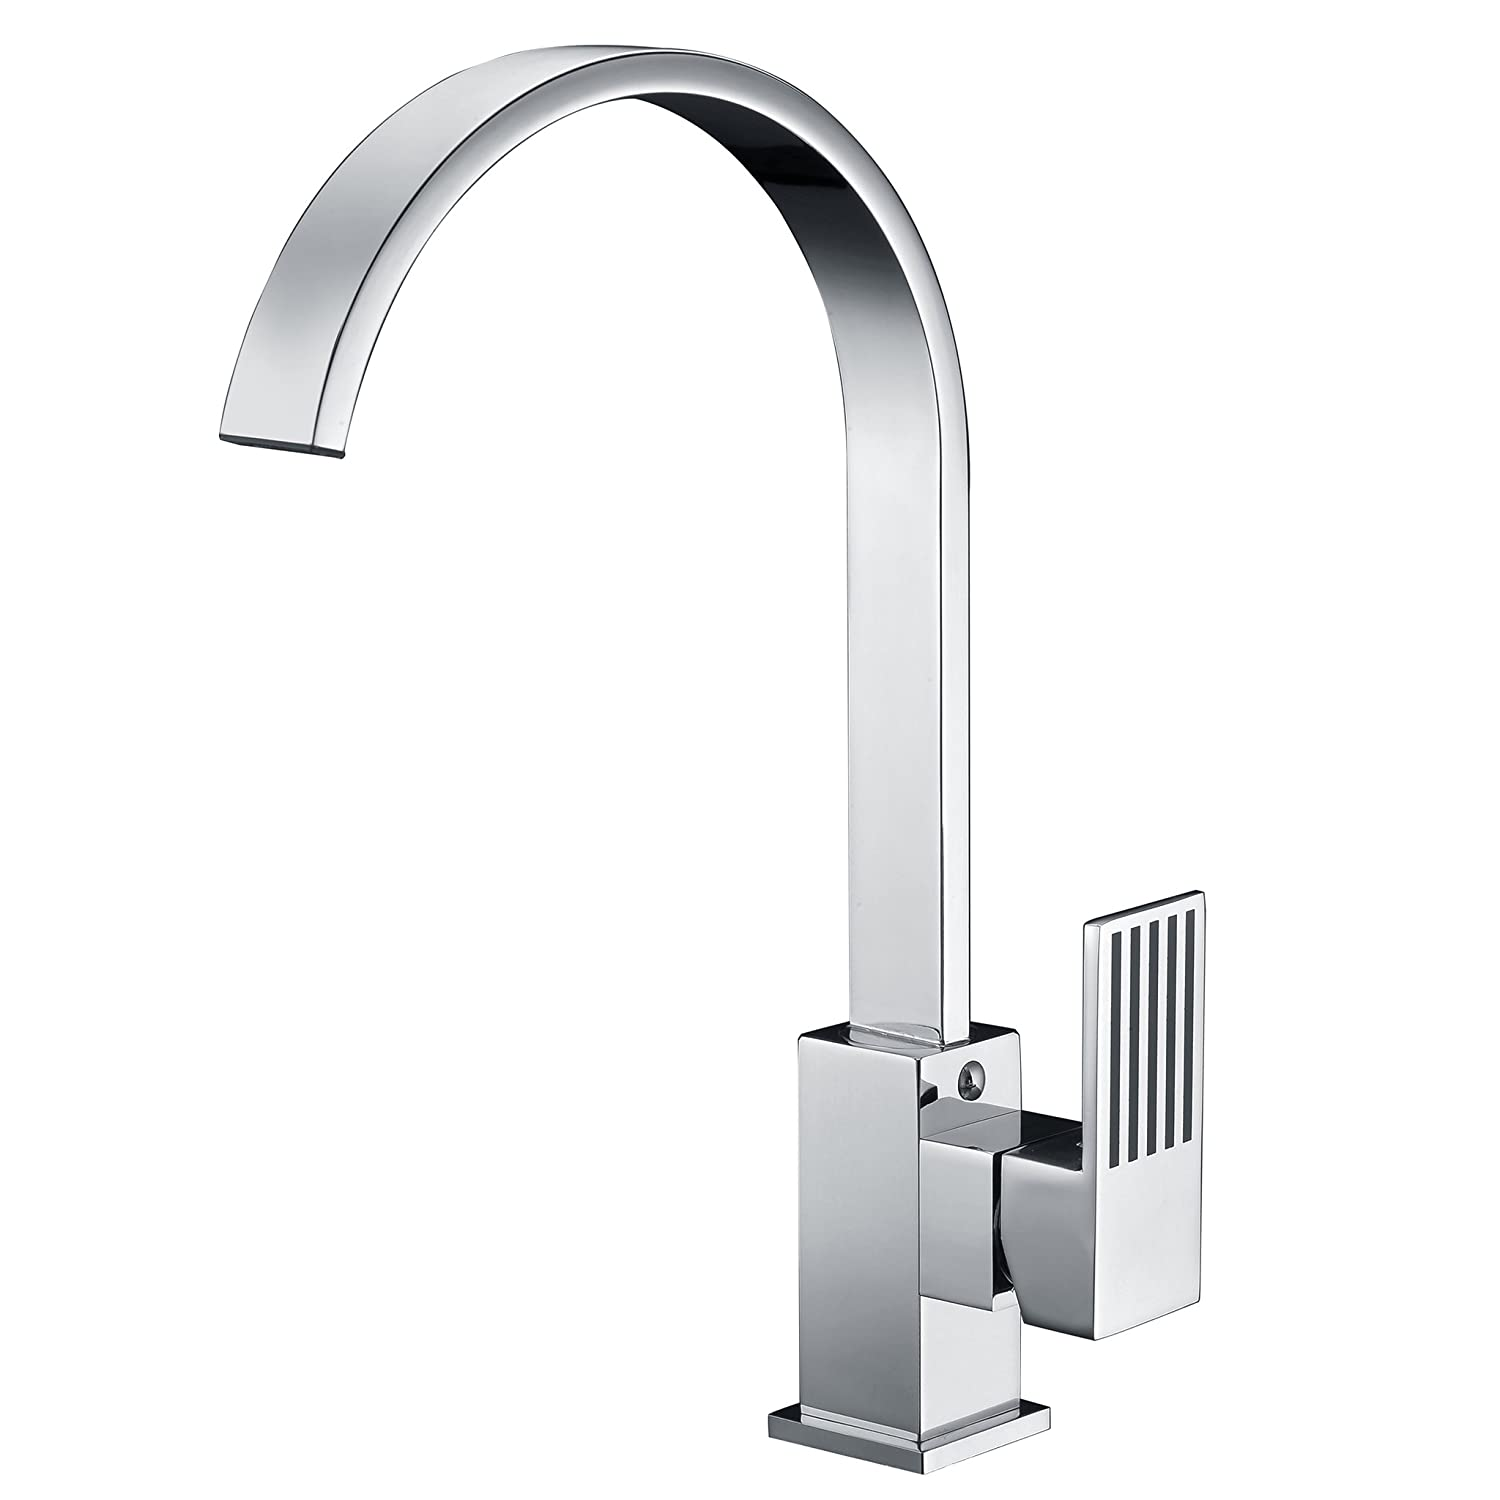 Avola Chrome Twin Levers Kitchen Sink Mixer Tap Full Solid Brass Body Stainless Steel Swiel Spring Spout with Pull Down Single Function Brass Nozzle Classic Design HUASONG